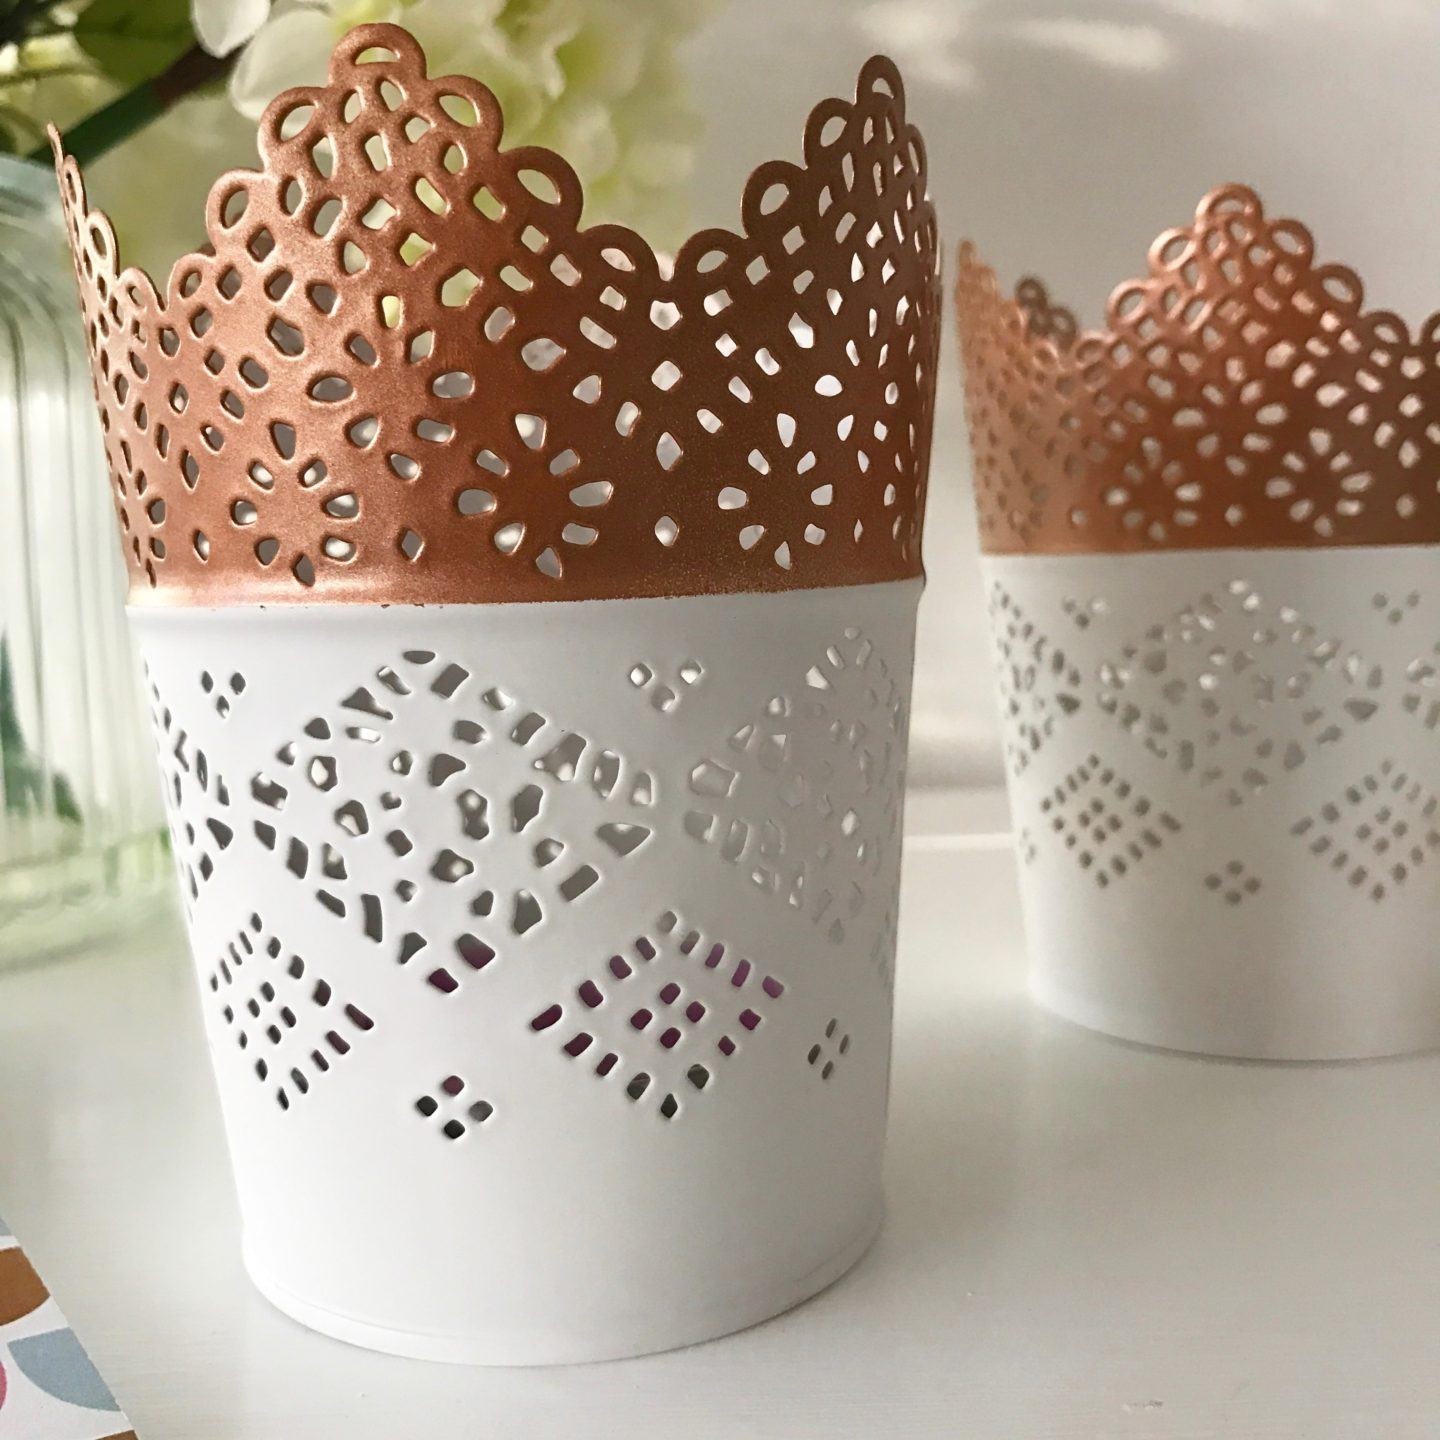 Copper Spray Paint Upcycled Tealight Holders